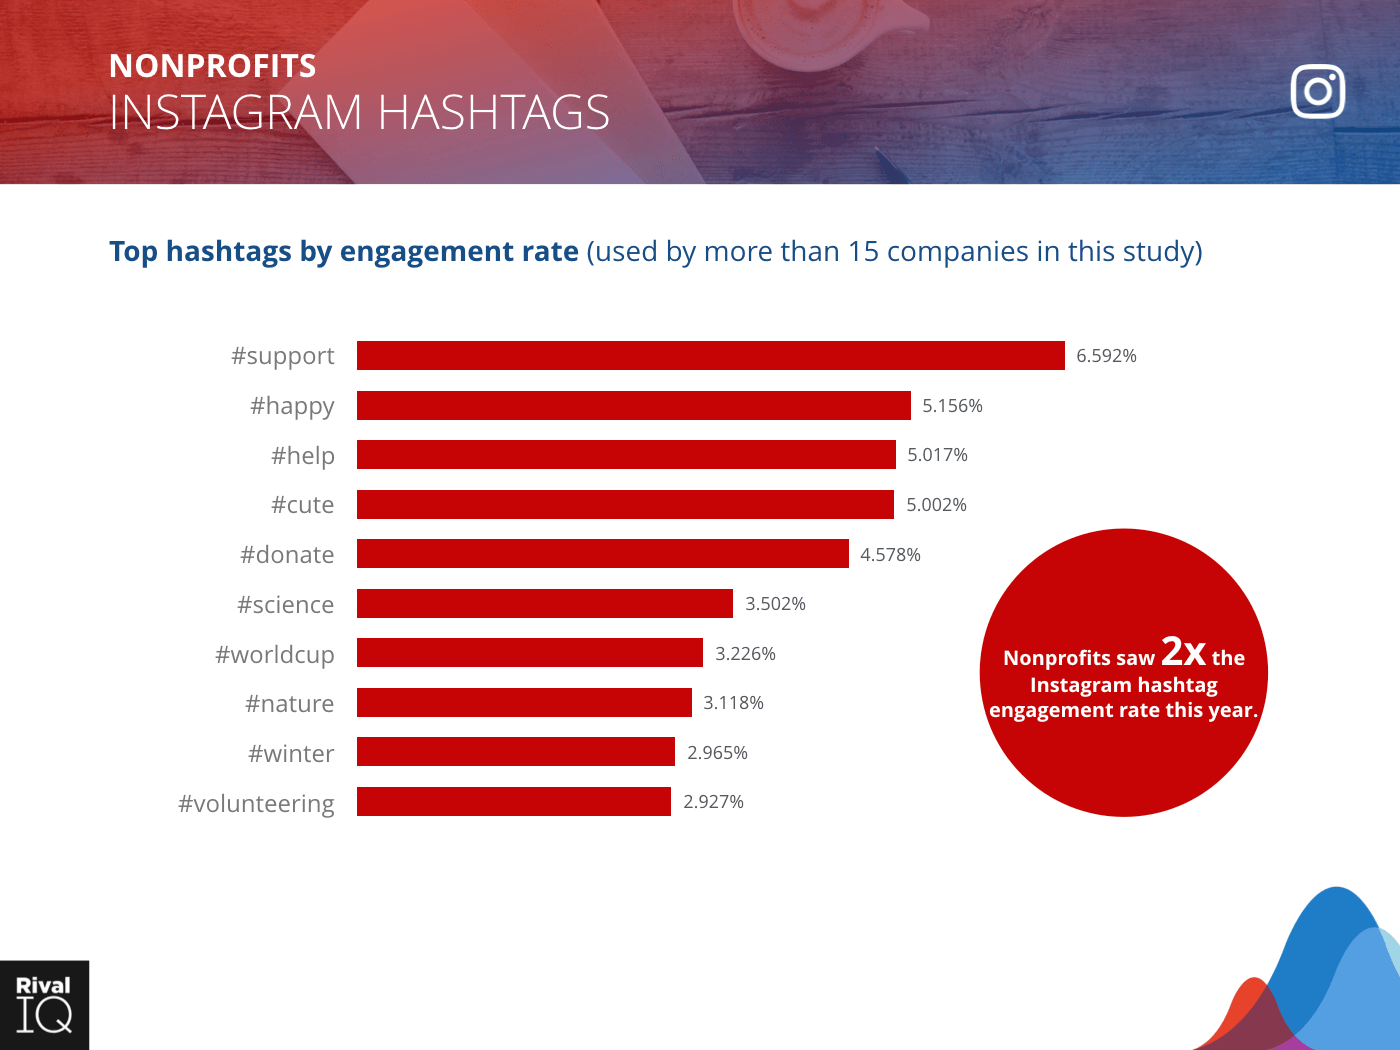 Nonprofit Industry: bar graph, top hashtags by engagement rate on Instagram